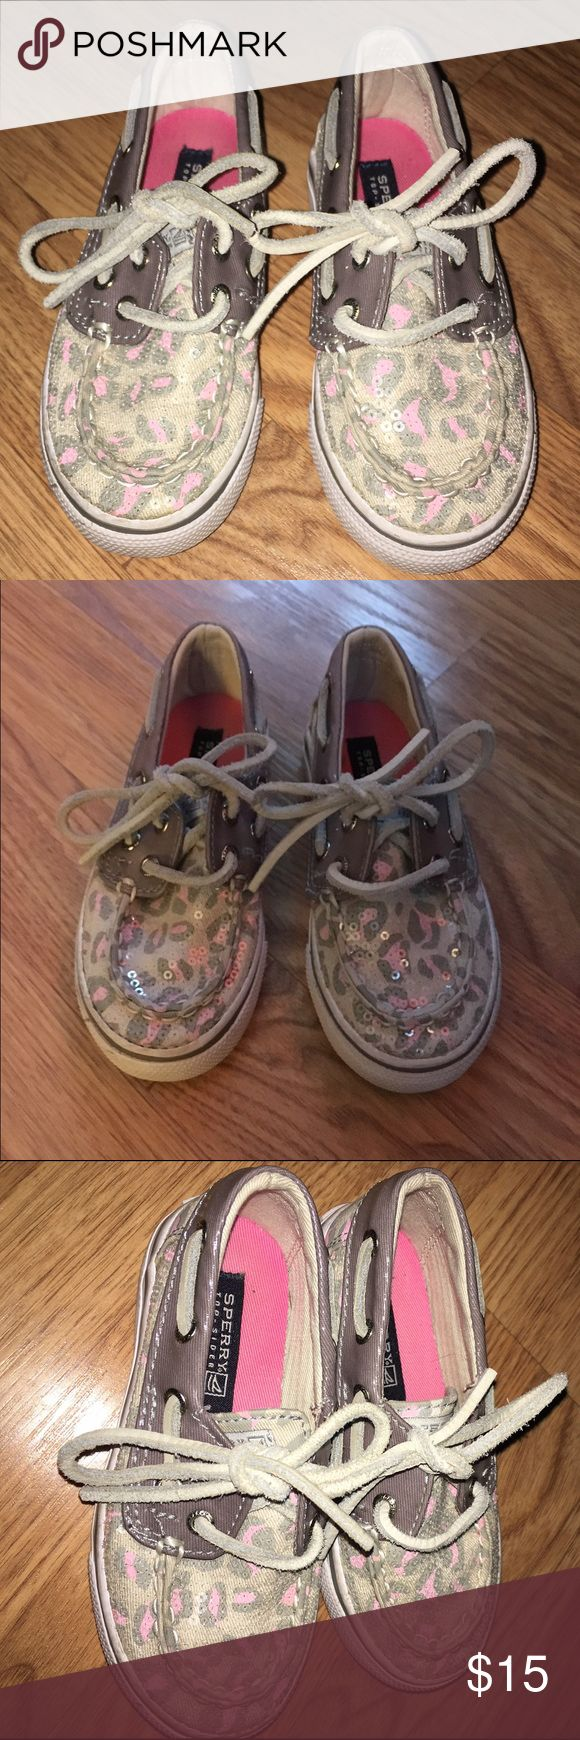 Sperry Top-Sider size 7.5 Toddler Girls Sperry Top-Sider sneakers with laces. Sperry Top-Sider Shoes Sneakers